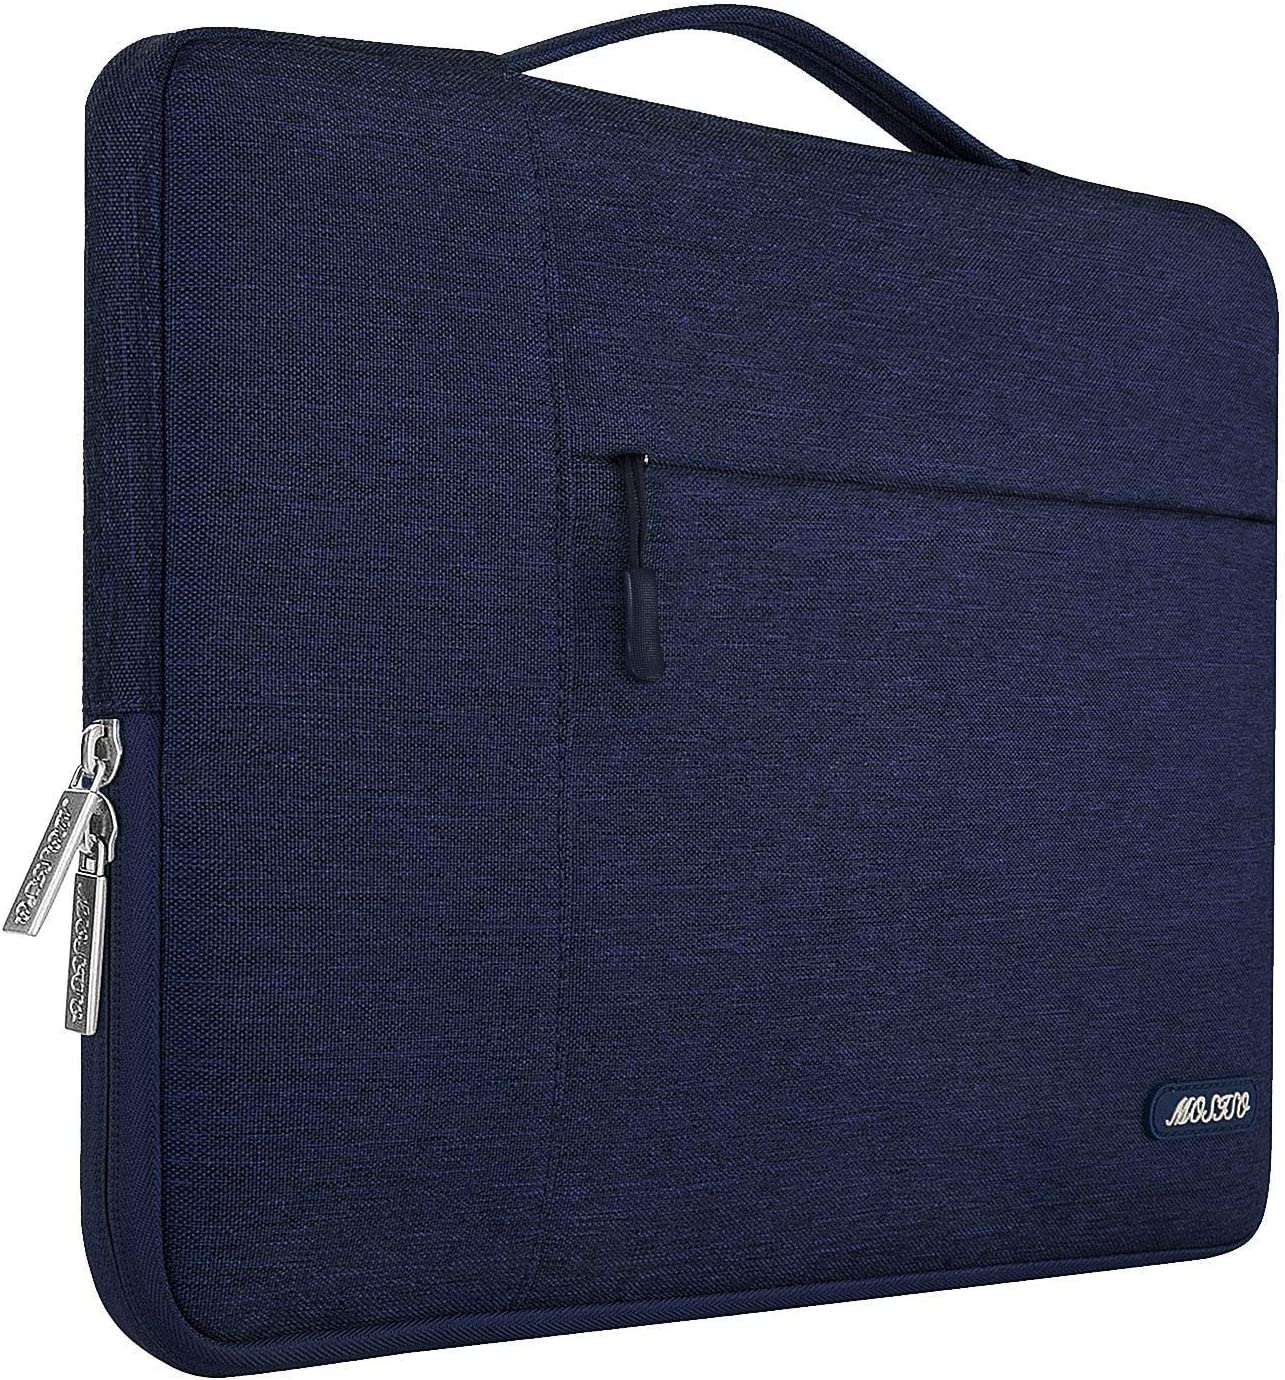 MOSISO Laptop Sleeve Compatible with 13-13.3 inch MacBook Air, MacBook Pro, Notebook Computer, Polyester Multifunctional Briefcase Carrying Bag, Navy Blue